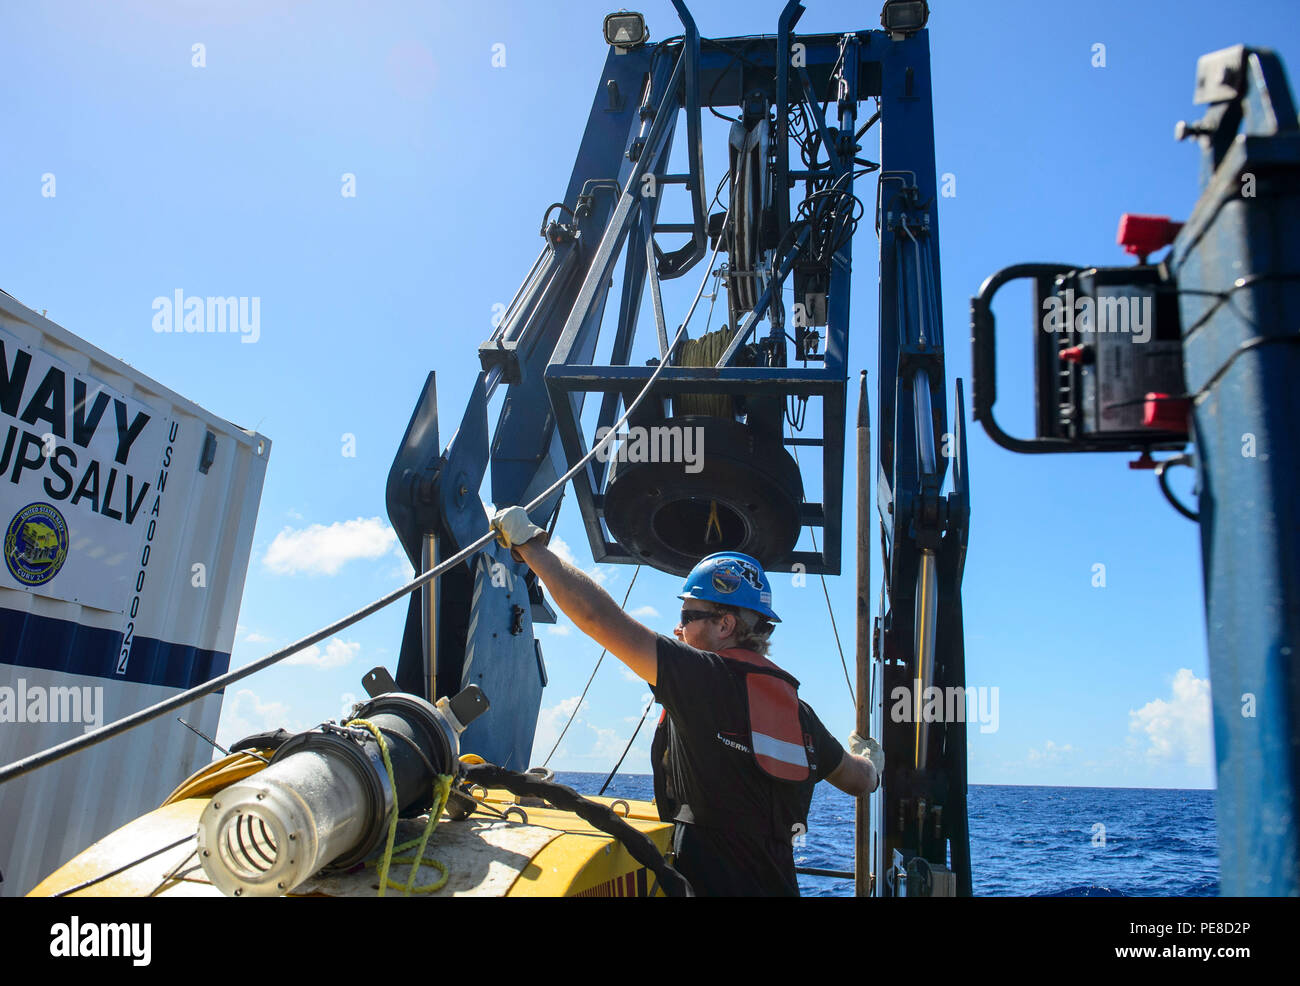 151024-N-RZ218-030   BAHAMAS (Oct. 24, 2015) Tucker Bailey, a contractor with Phoenix International Incorporated, guides a towline through the A-frame while deploying the tow pinger locater 25 (TPL 25) aboard USNS Apache (T-ATF 172). USNS Apache departed Norfolk, Va., Oct. 19, to begin searching for wreckage from the missing U.S. Flagged merchant vessel El Faro. The ship is equipped with several pieces of underwater search equipment, including a voyage data recorder locator, side-scan sonar and an underwater remote operated vehicle. The Navy's mission will be to first locate the ship and, if p - Stock Image